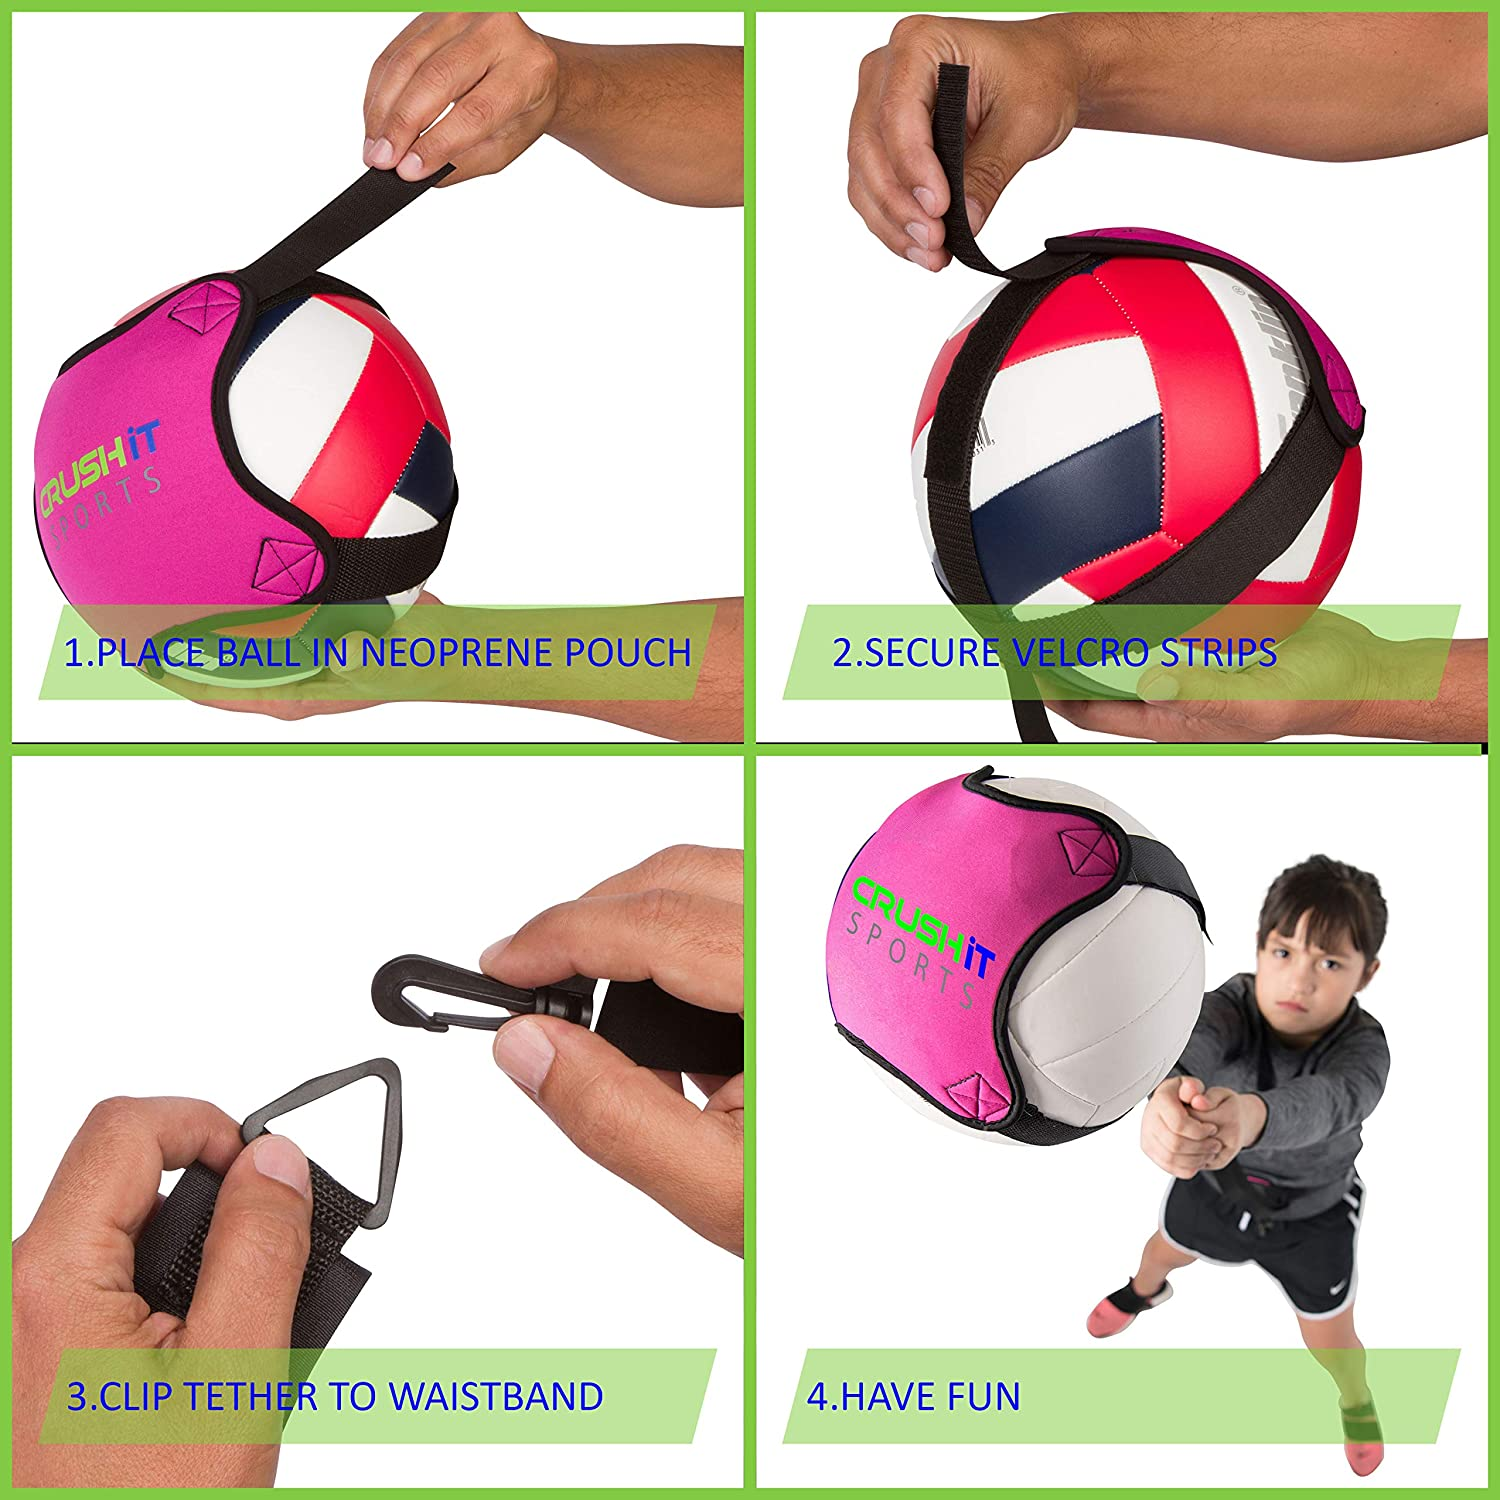 Practice Your Serving Spiking Crush it Sports Volleyball Training Equipment Aid Perfect for Beginners Serve and Spike Like a Pro with this Solo Trainer Setting and Arm Swing